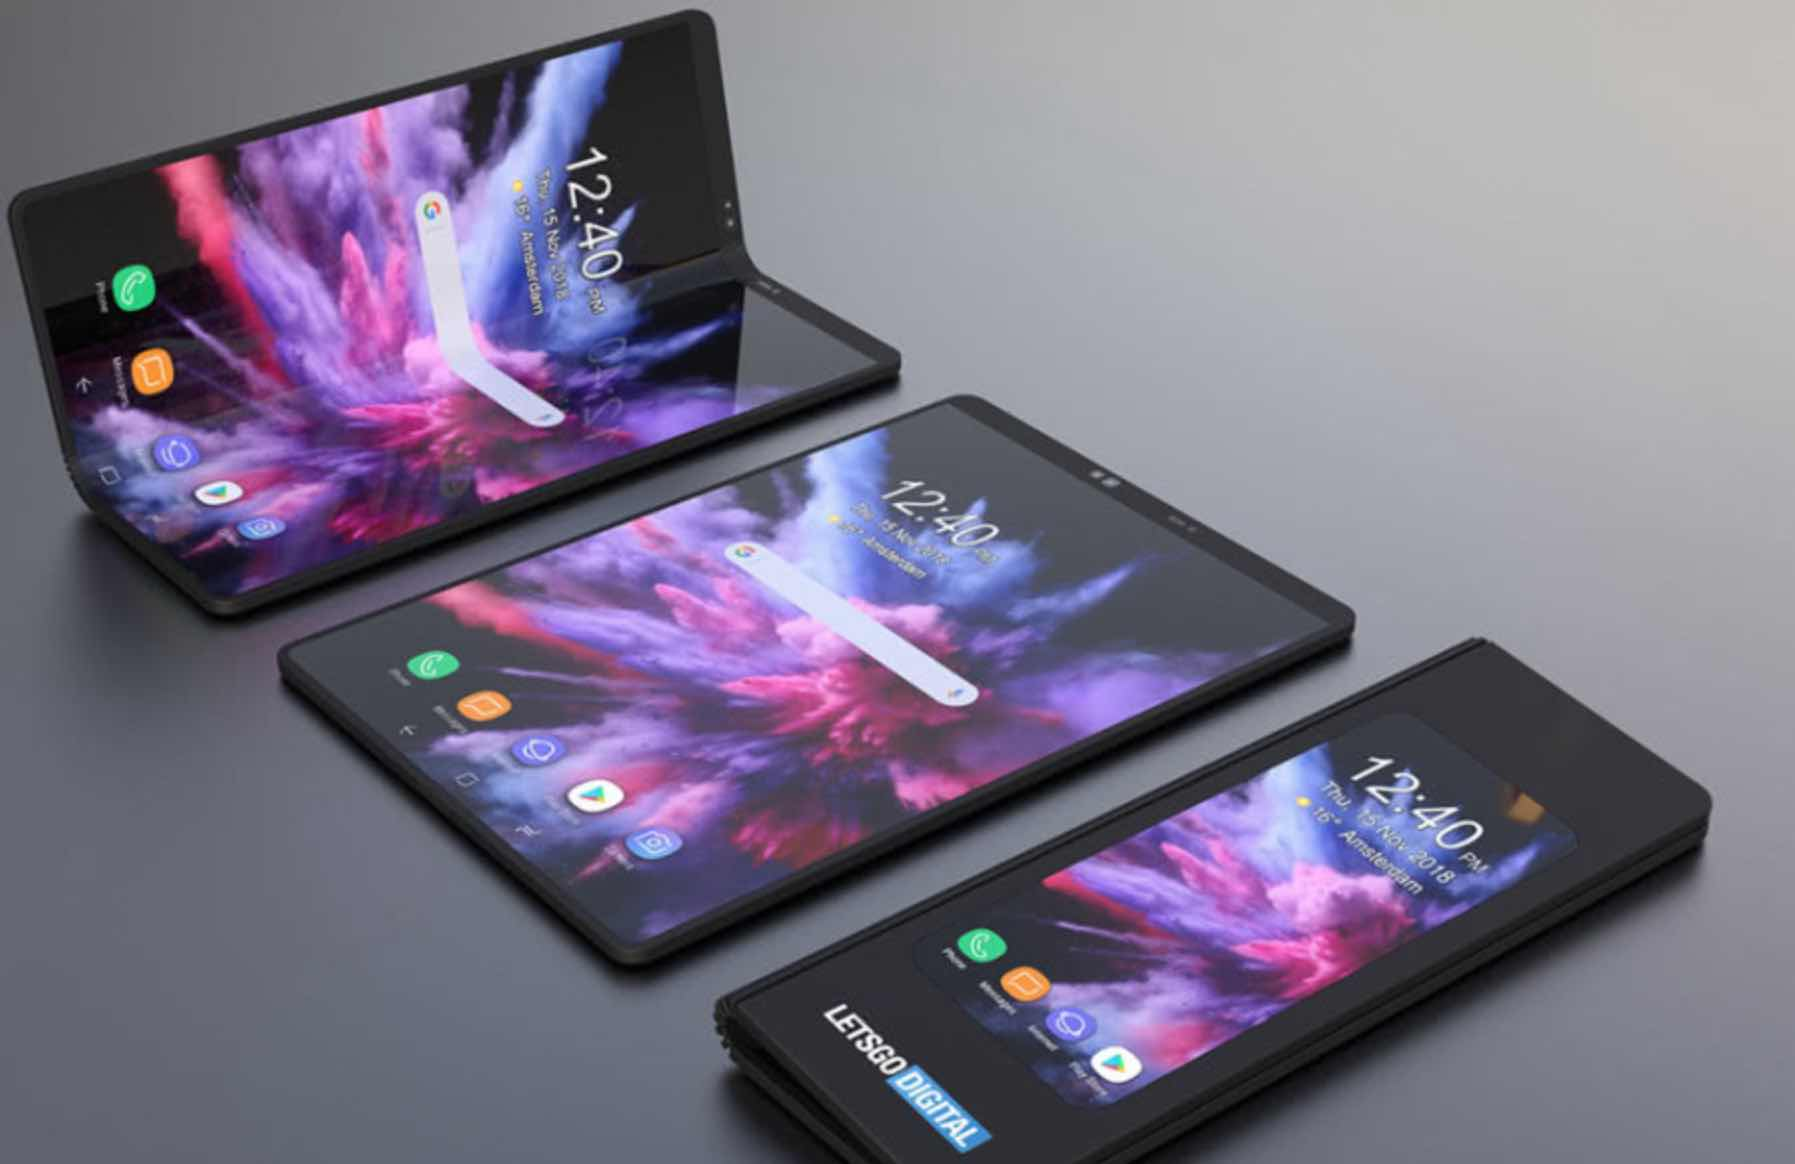 2019 six new Smartphone technology: aperture screen, 5G, flexible folding and more cameras